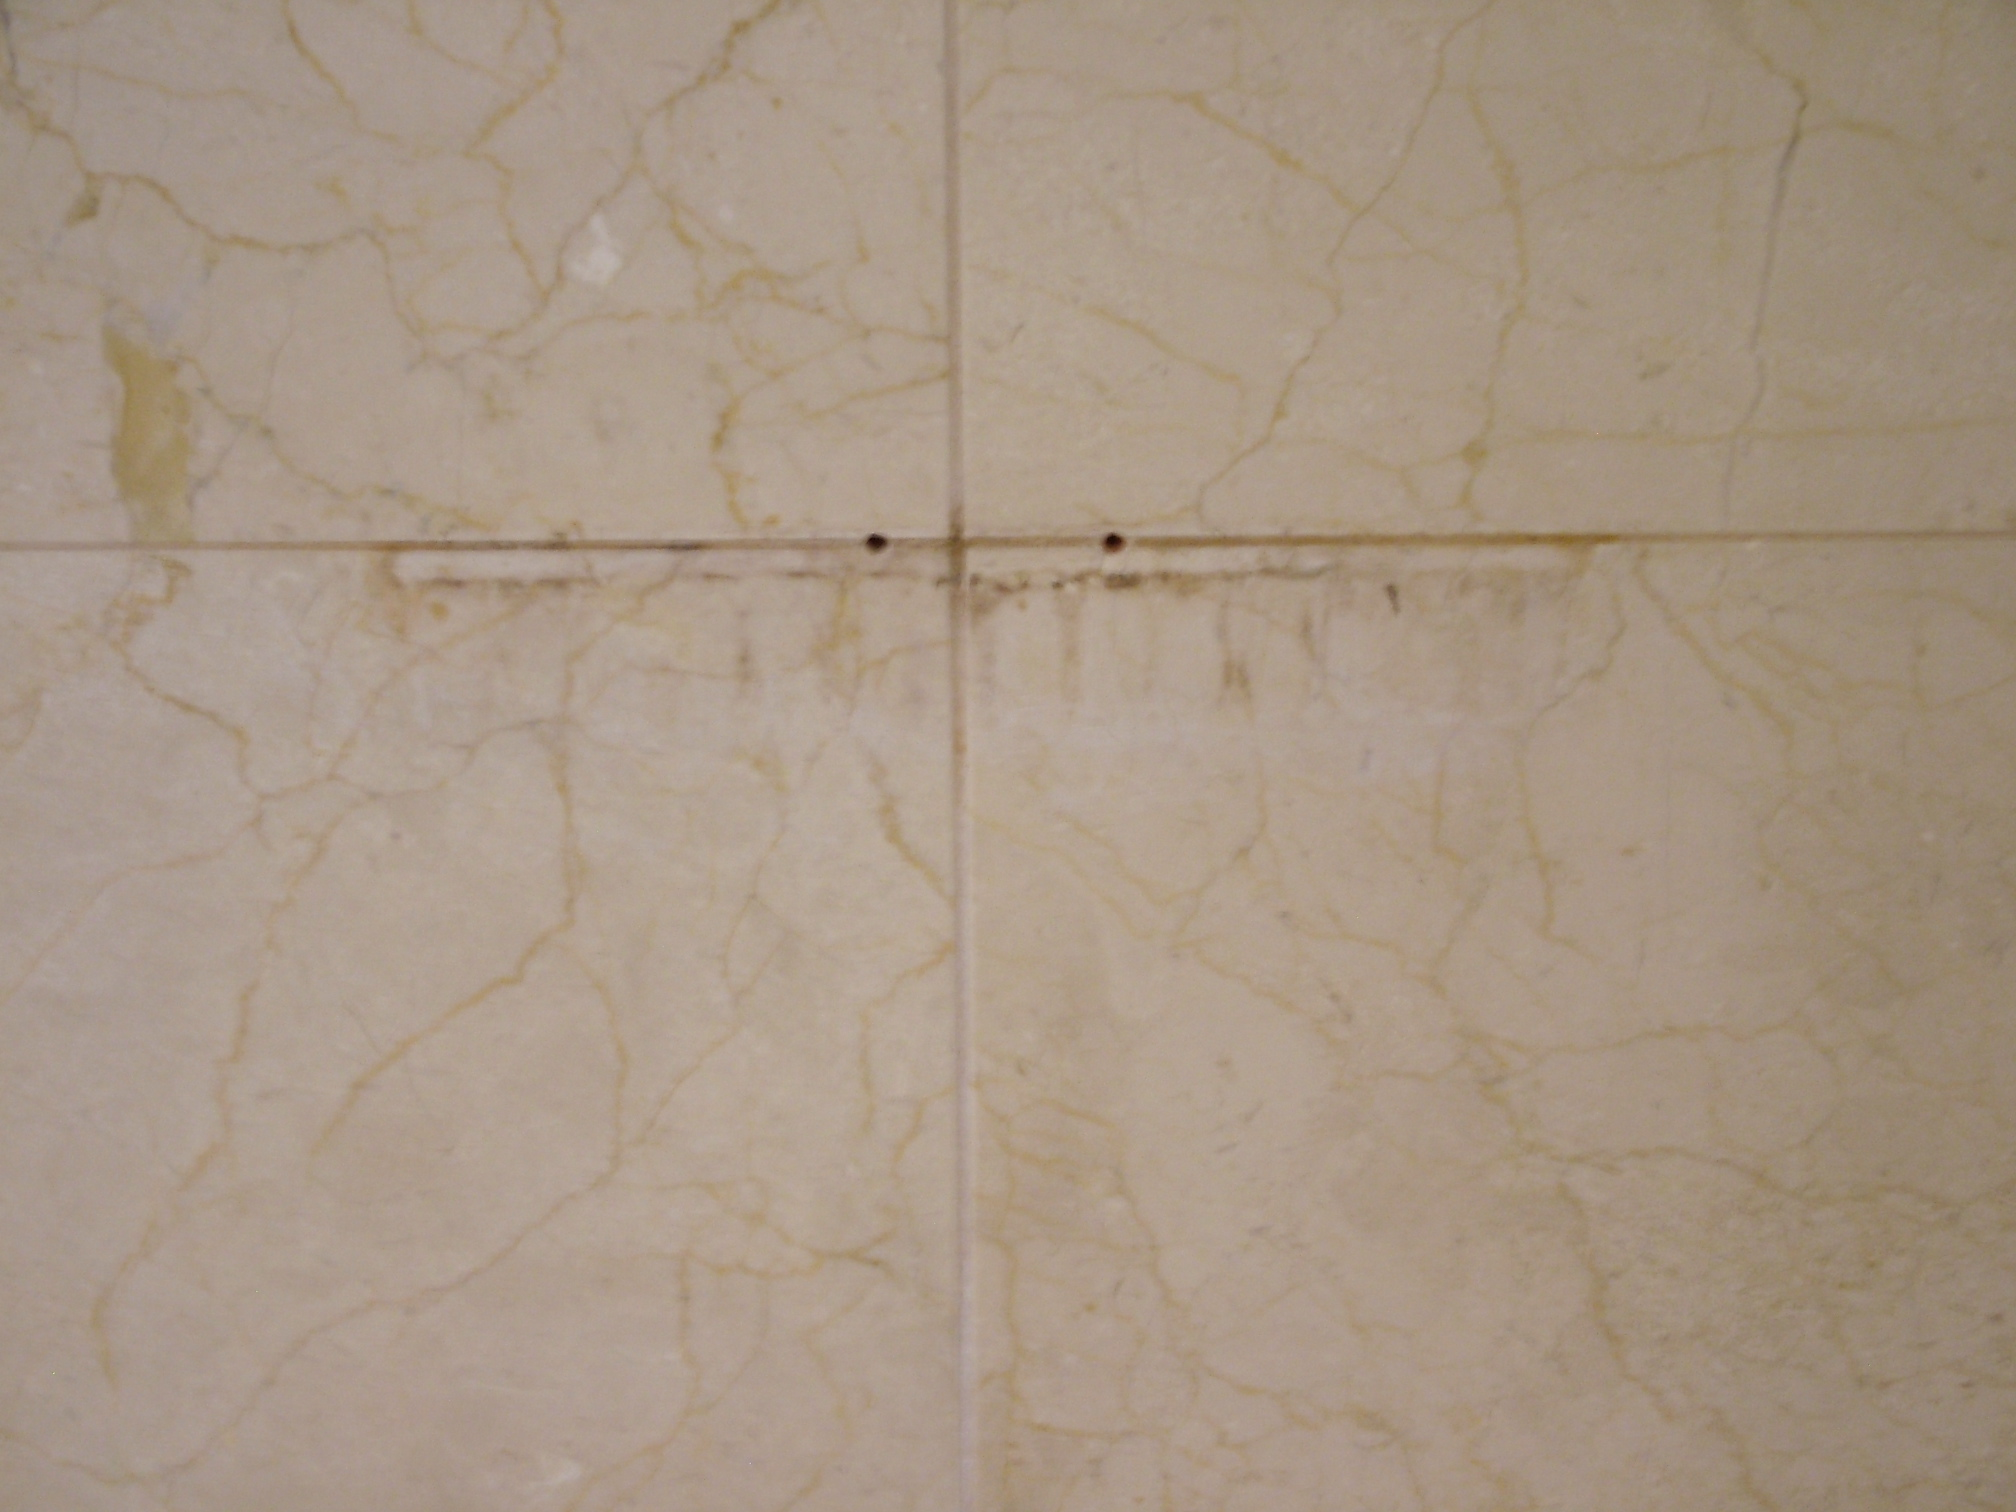 Lustre Ltd Specialists In Marble Cleaning, Polishing And Tile U0026 Grout  Restoration   Repair Leaky Shower Wall Floor Tiles